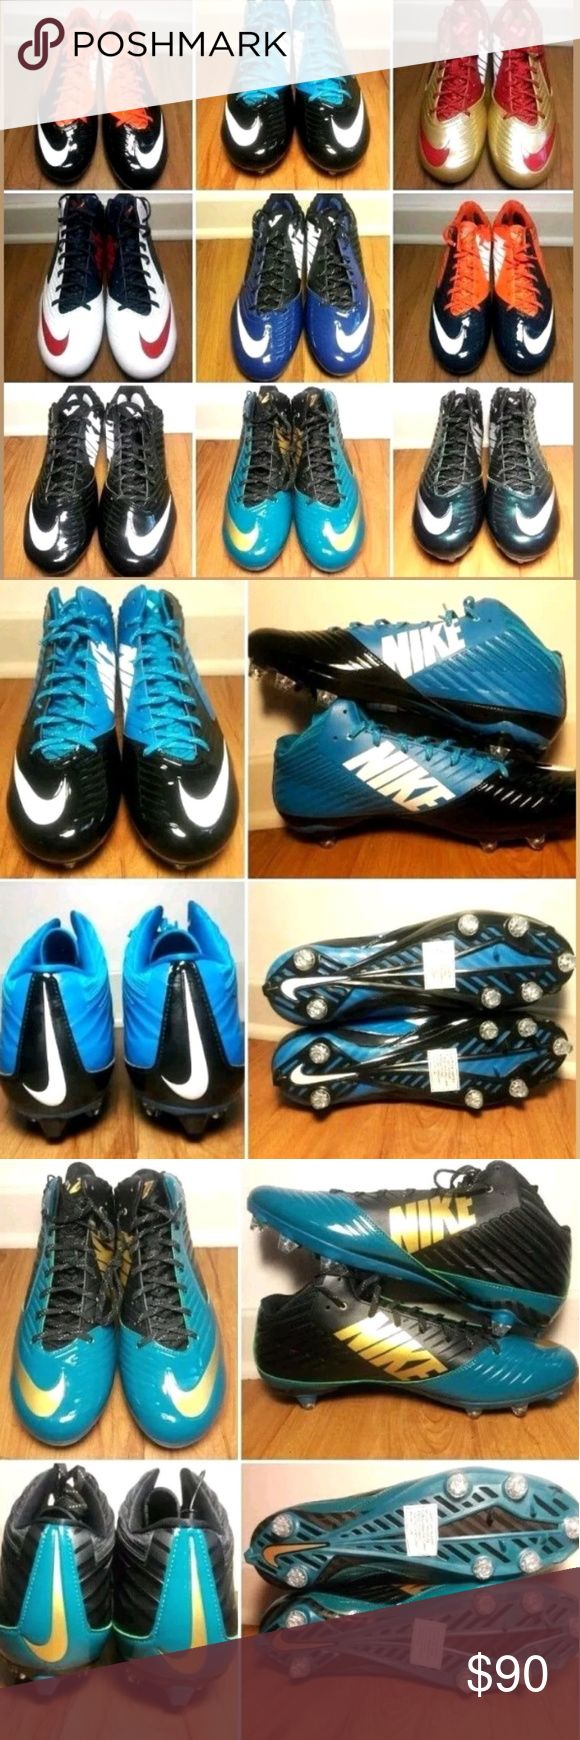 Mens Nike Vapor Speed 2014 Sport Cleats size 13-15 New Mens Nike Vapor Speed Throwback 2014 2.0 TD Low/High Football Sport Cleats  Sizes Ranching from 13 - 15  Description:  Orange Blue White 13.5 Low  Gold Red White Size 13 Low  Teal Gold Black Size 14 High  Blue Black White Size 14 Low  Red White Blue Size 13.5 High  Green Black Silver Size 14 High  Black White Size 15 Low (2 Pair)  Orange Black White Size 14 Low  Orange Black White Size 13.5 Low  Turquoise Black White Size 13 High Brand…